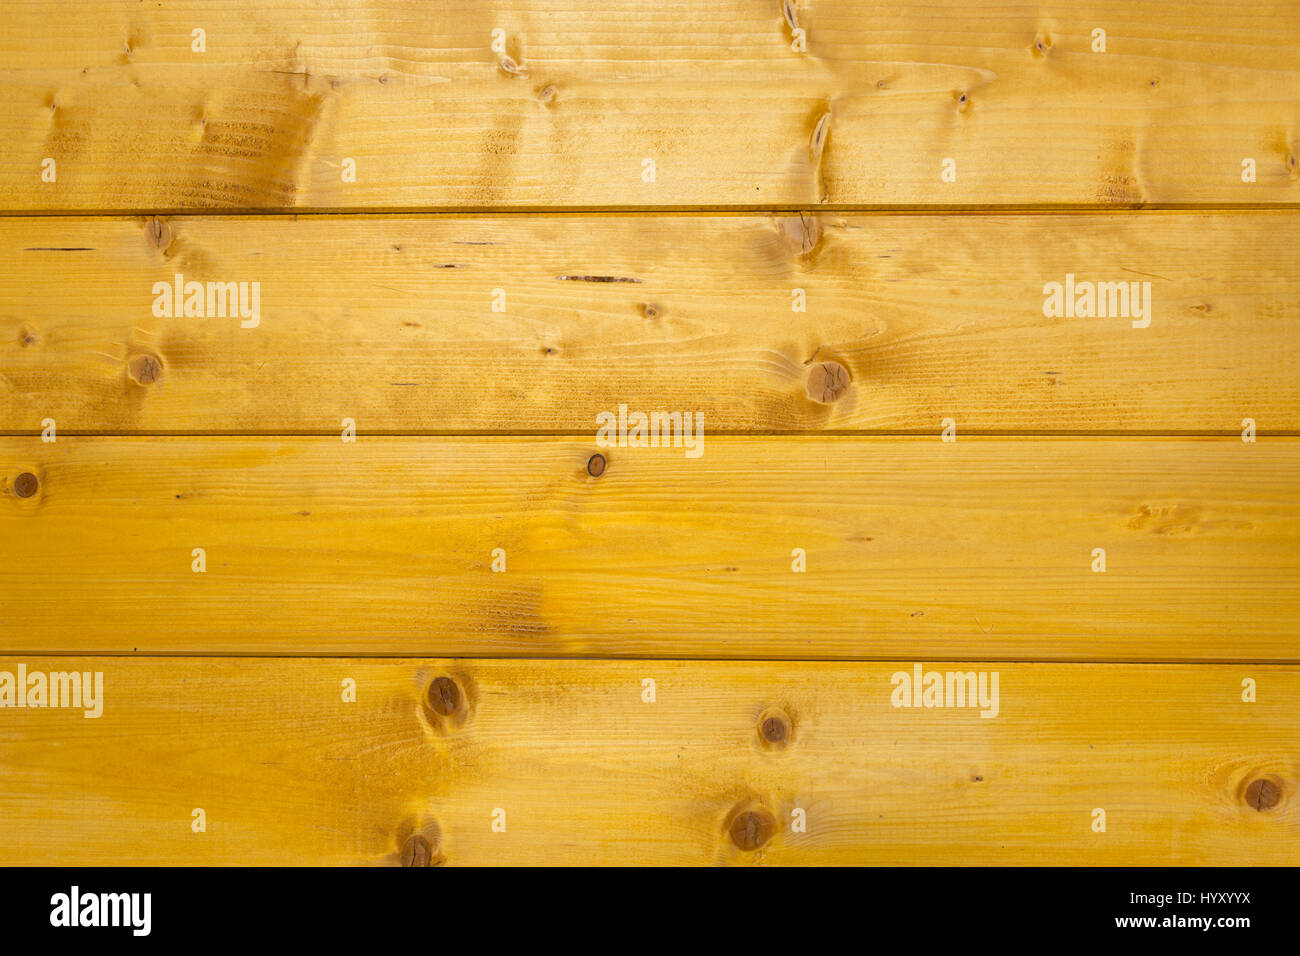 Abstract texture of treated, stained and polished wood with natural spots, scars and marks - Stock Image